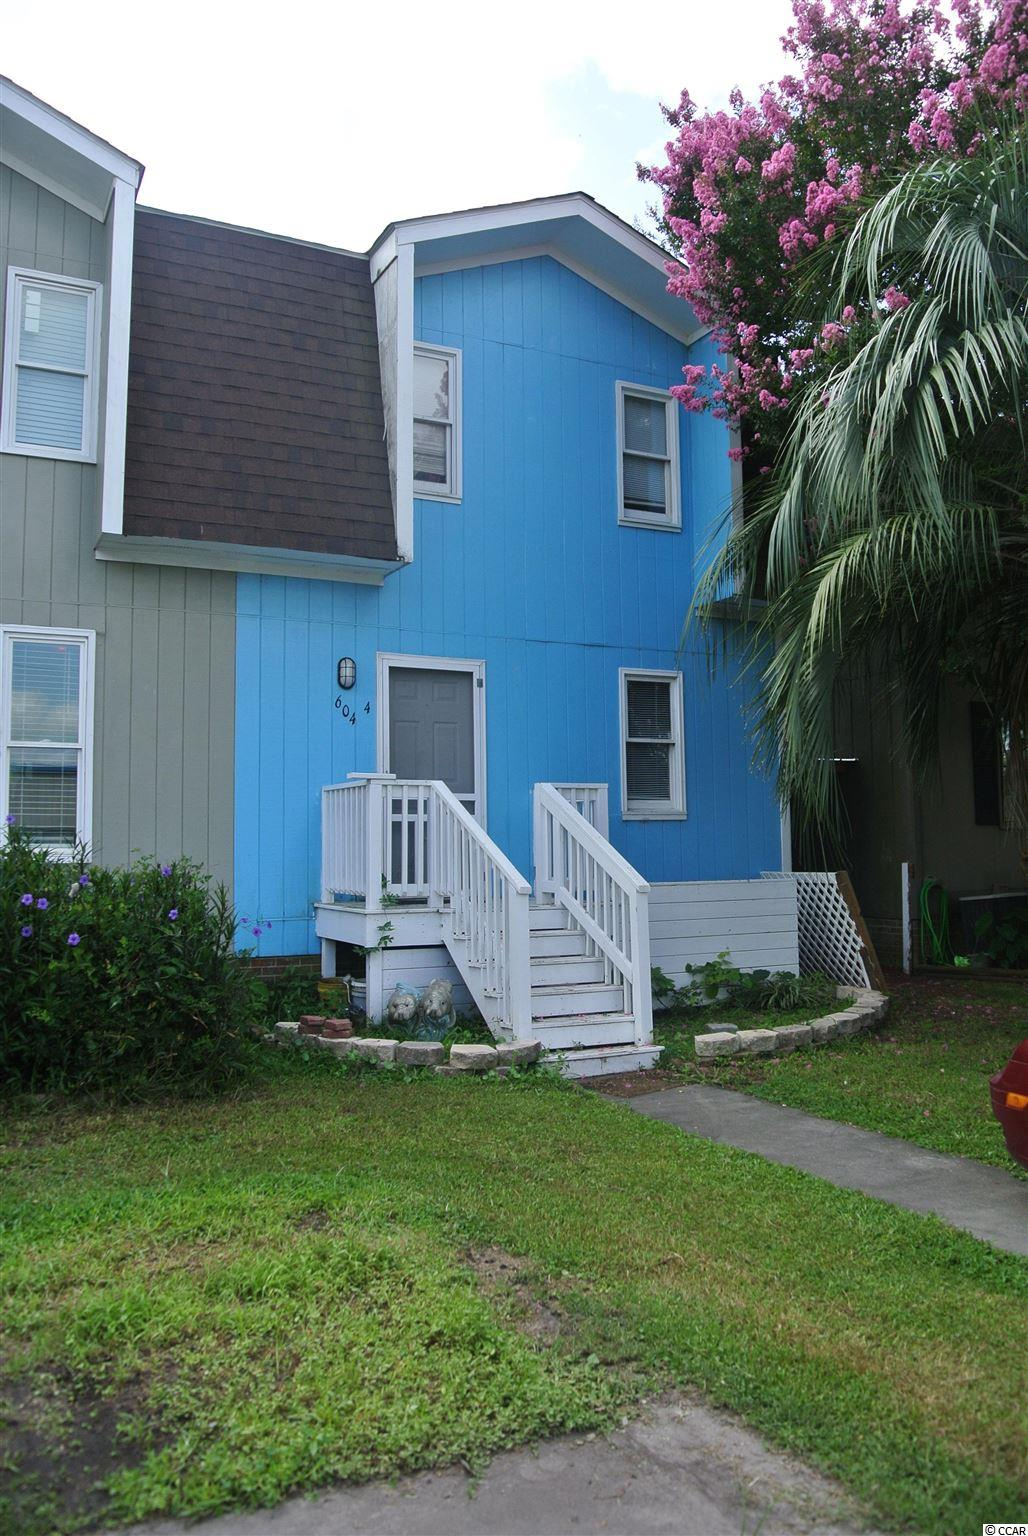 This is a rare opportunity to own a charming 3br/1.5bath true townhome located east of 17 in desirable Murrells Inlet just a couple of blocks to the beach. This is a two-story home with spacious living room with fireplace downstairs leading to a nice enclosed screened in back porch and fenced in courtyard. Upstairs you will find three cozy bedrooms. The home needs some TLC, but has newer roof, HVAC, and water heater. NO HOA FEES! This property is a great investment opportunity nestled in an amazing location minutes to the marshwalk, Inlet Square Mall and all the great shopping, fine dining, and entertainment the seafood capital of South Carolina has to offer. A must see!